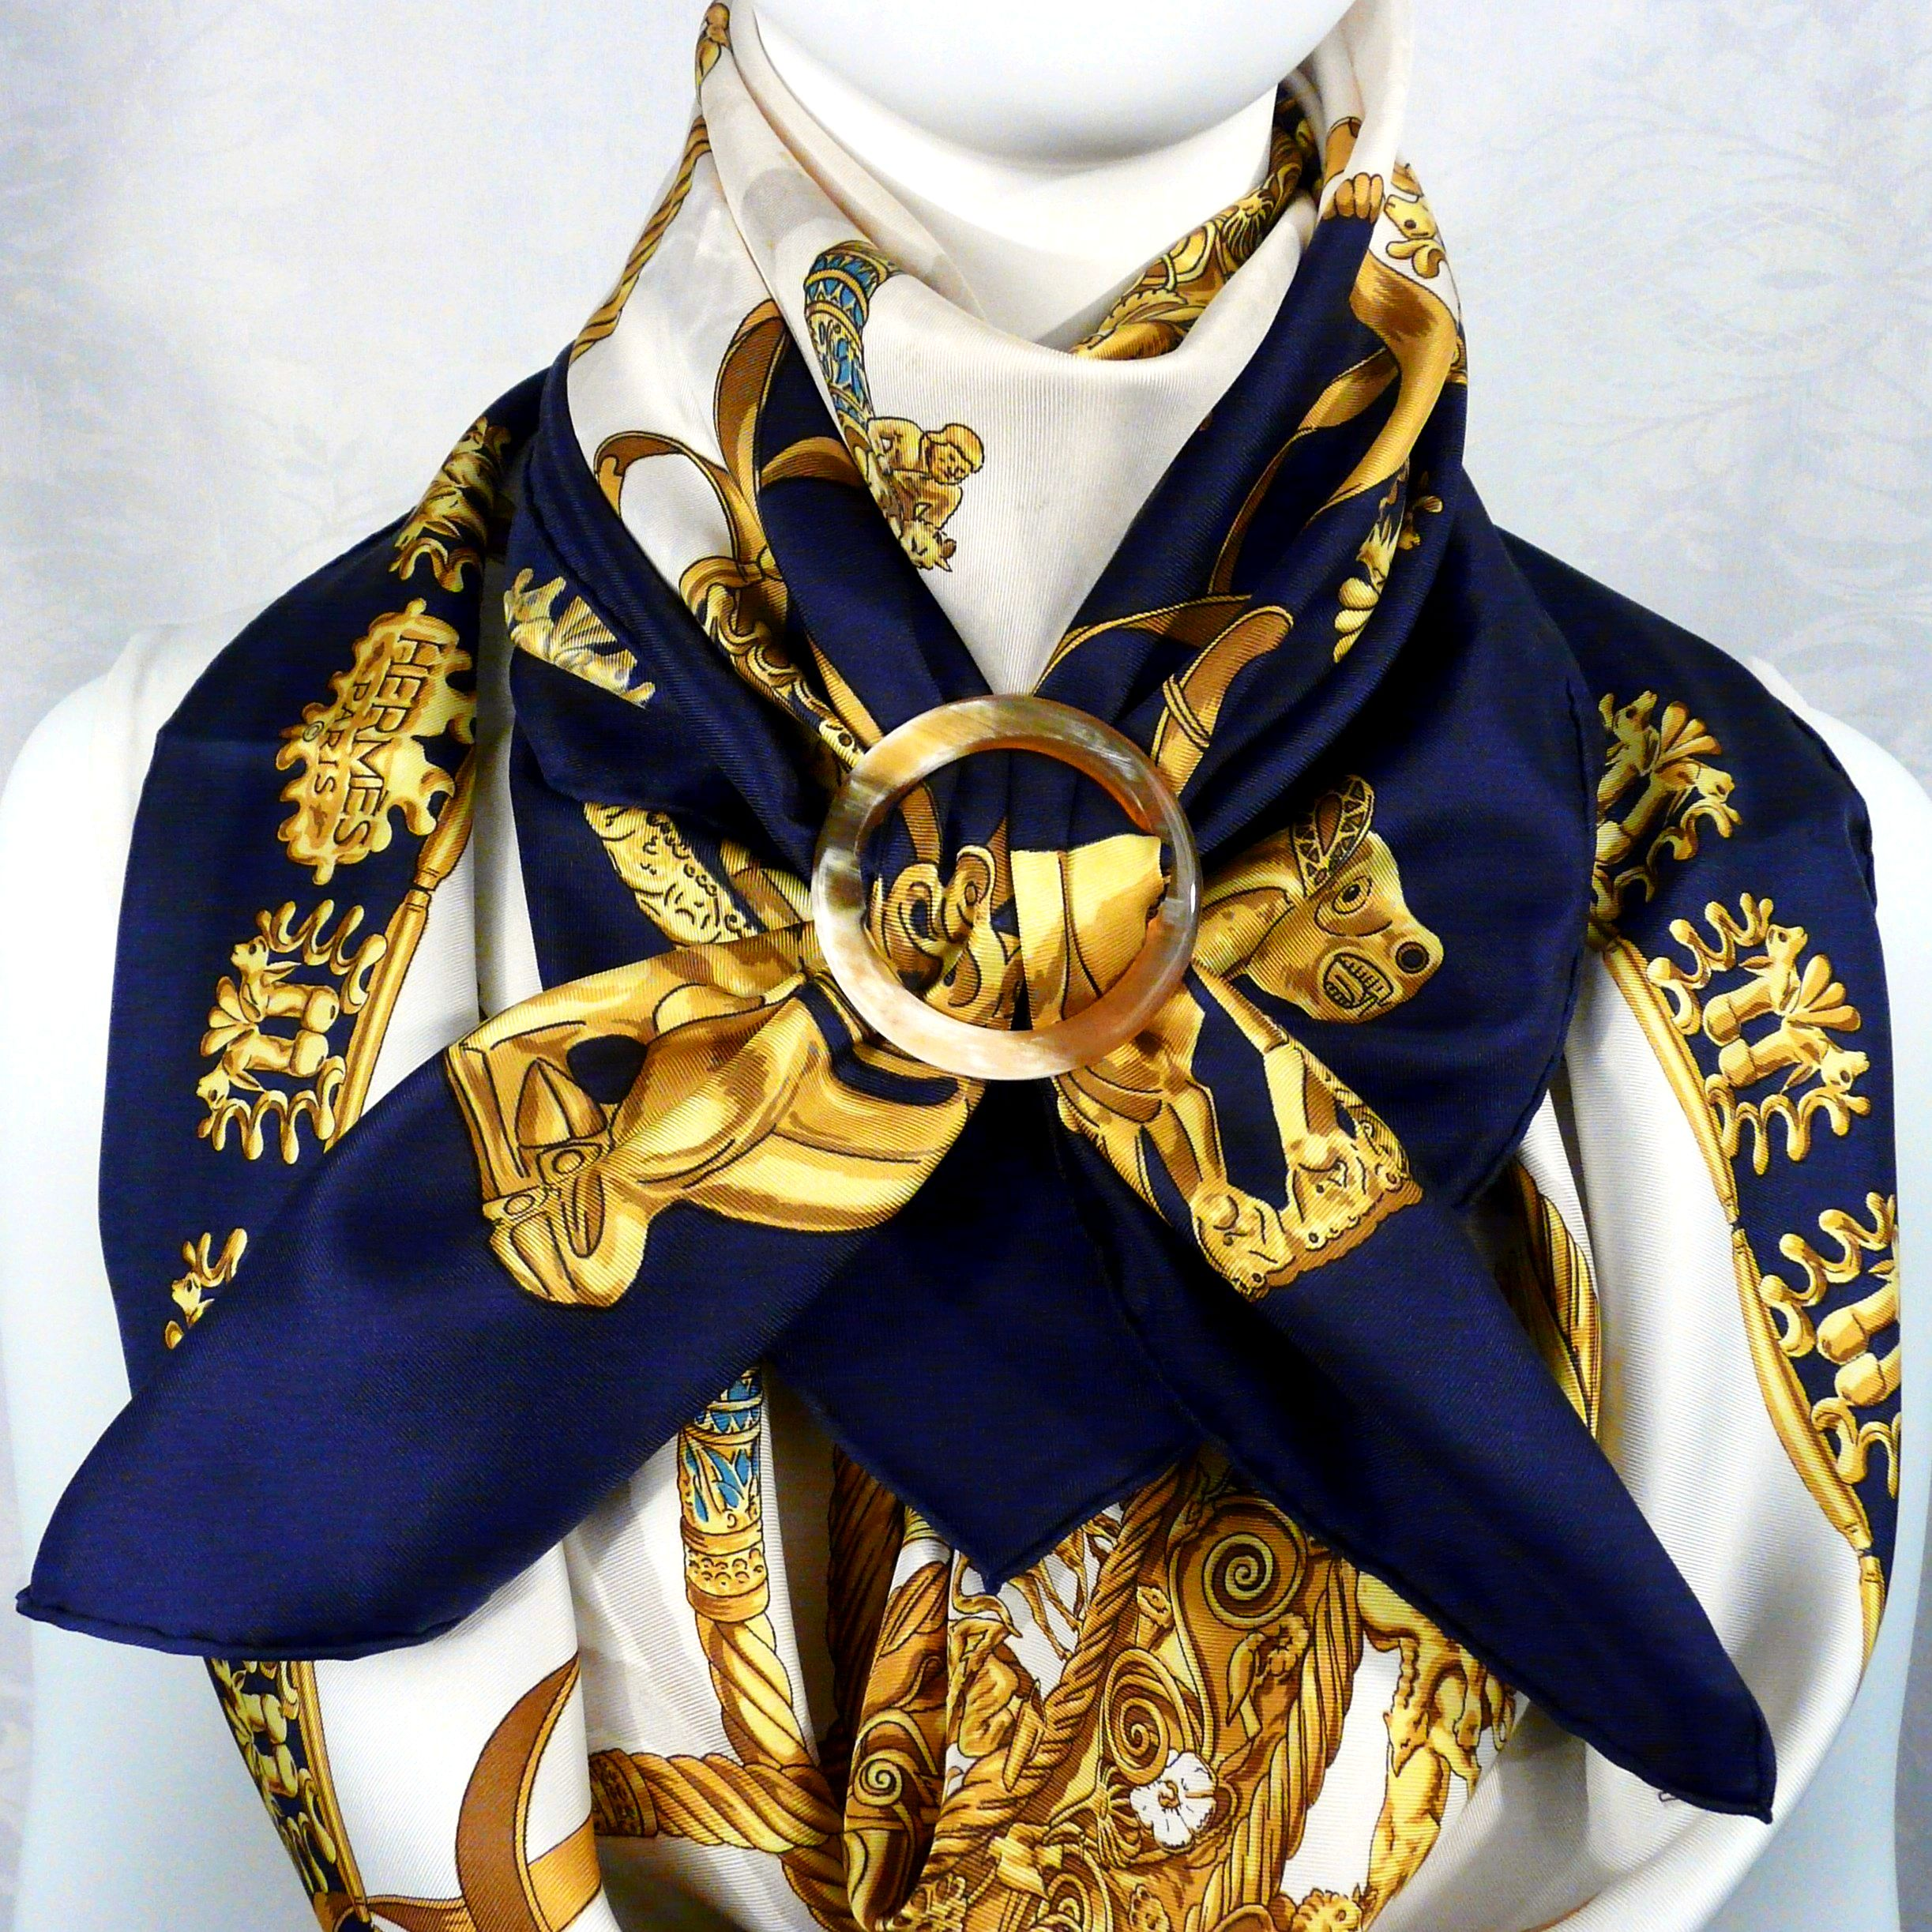 2 Cavaliers d'Or HERMES Scarves with Grand Rond Anneau Horn Scarf Ring Carre de Paris Close Up